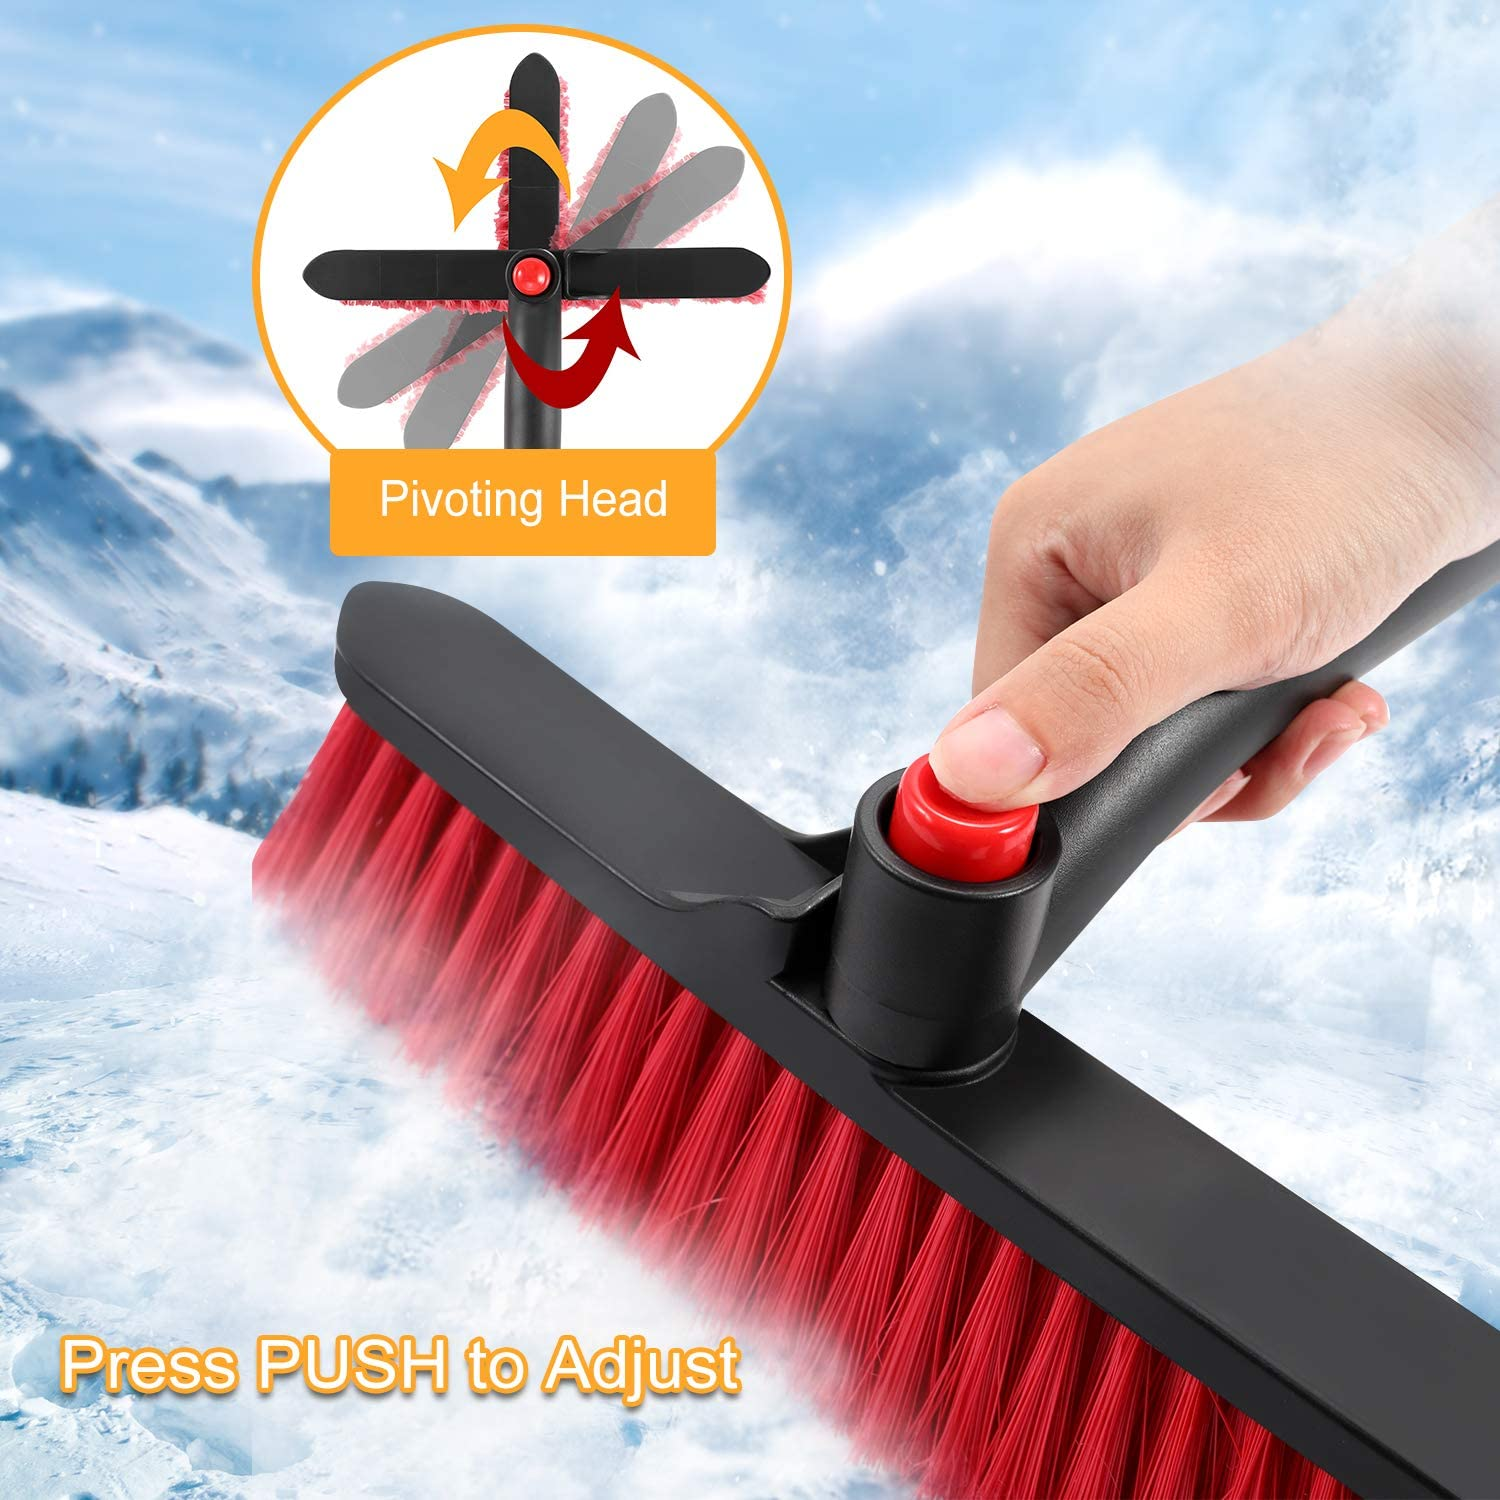 50in COFIT 3 in 1 Detachable Car Snow Brush with Squeegee and Ice Scraper Car Snow Scraper Removal with Foam Grip for Car Auto SUV Truck Windshield Windows